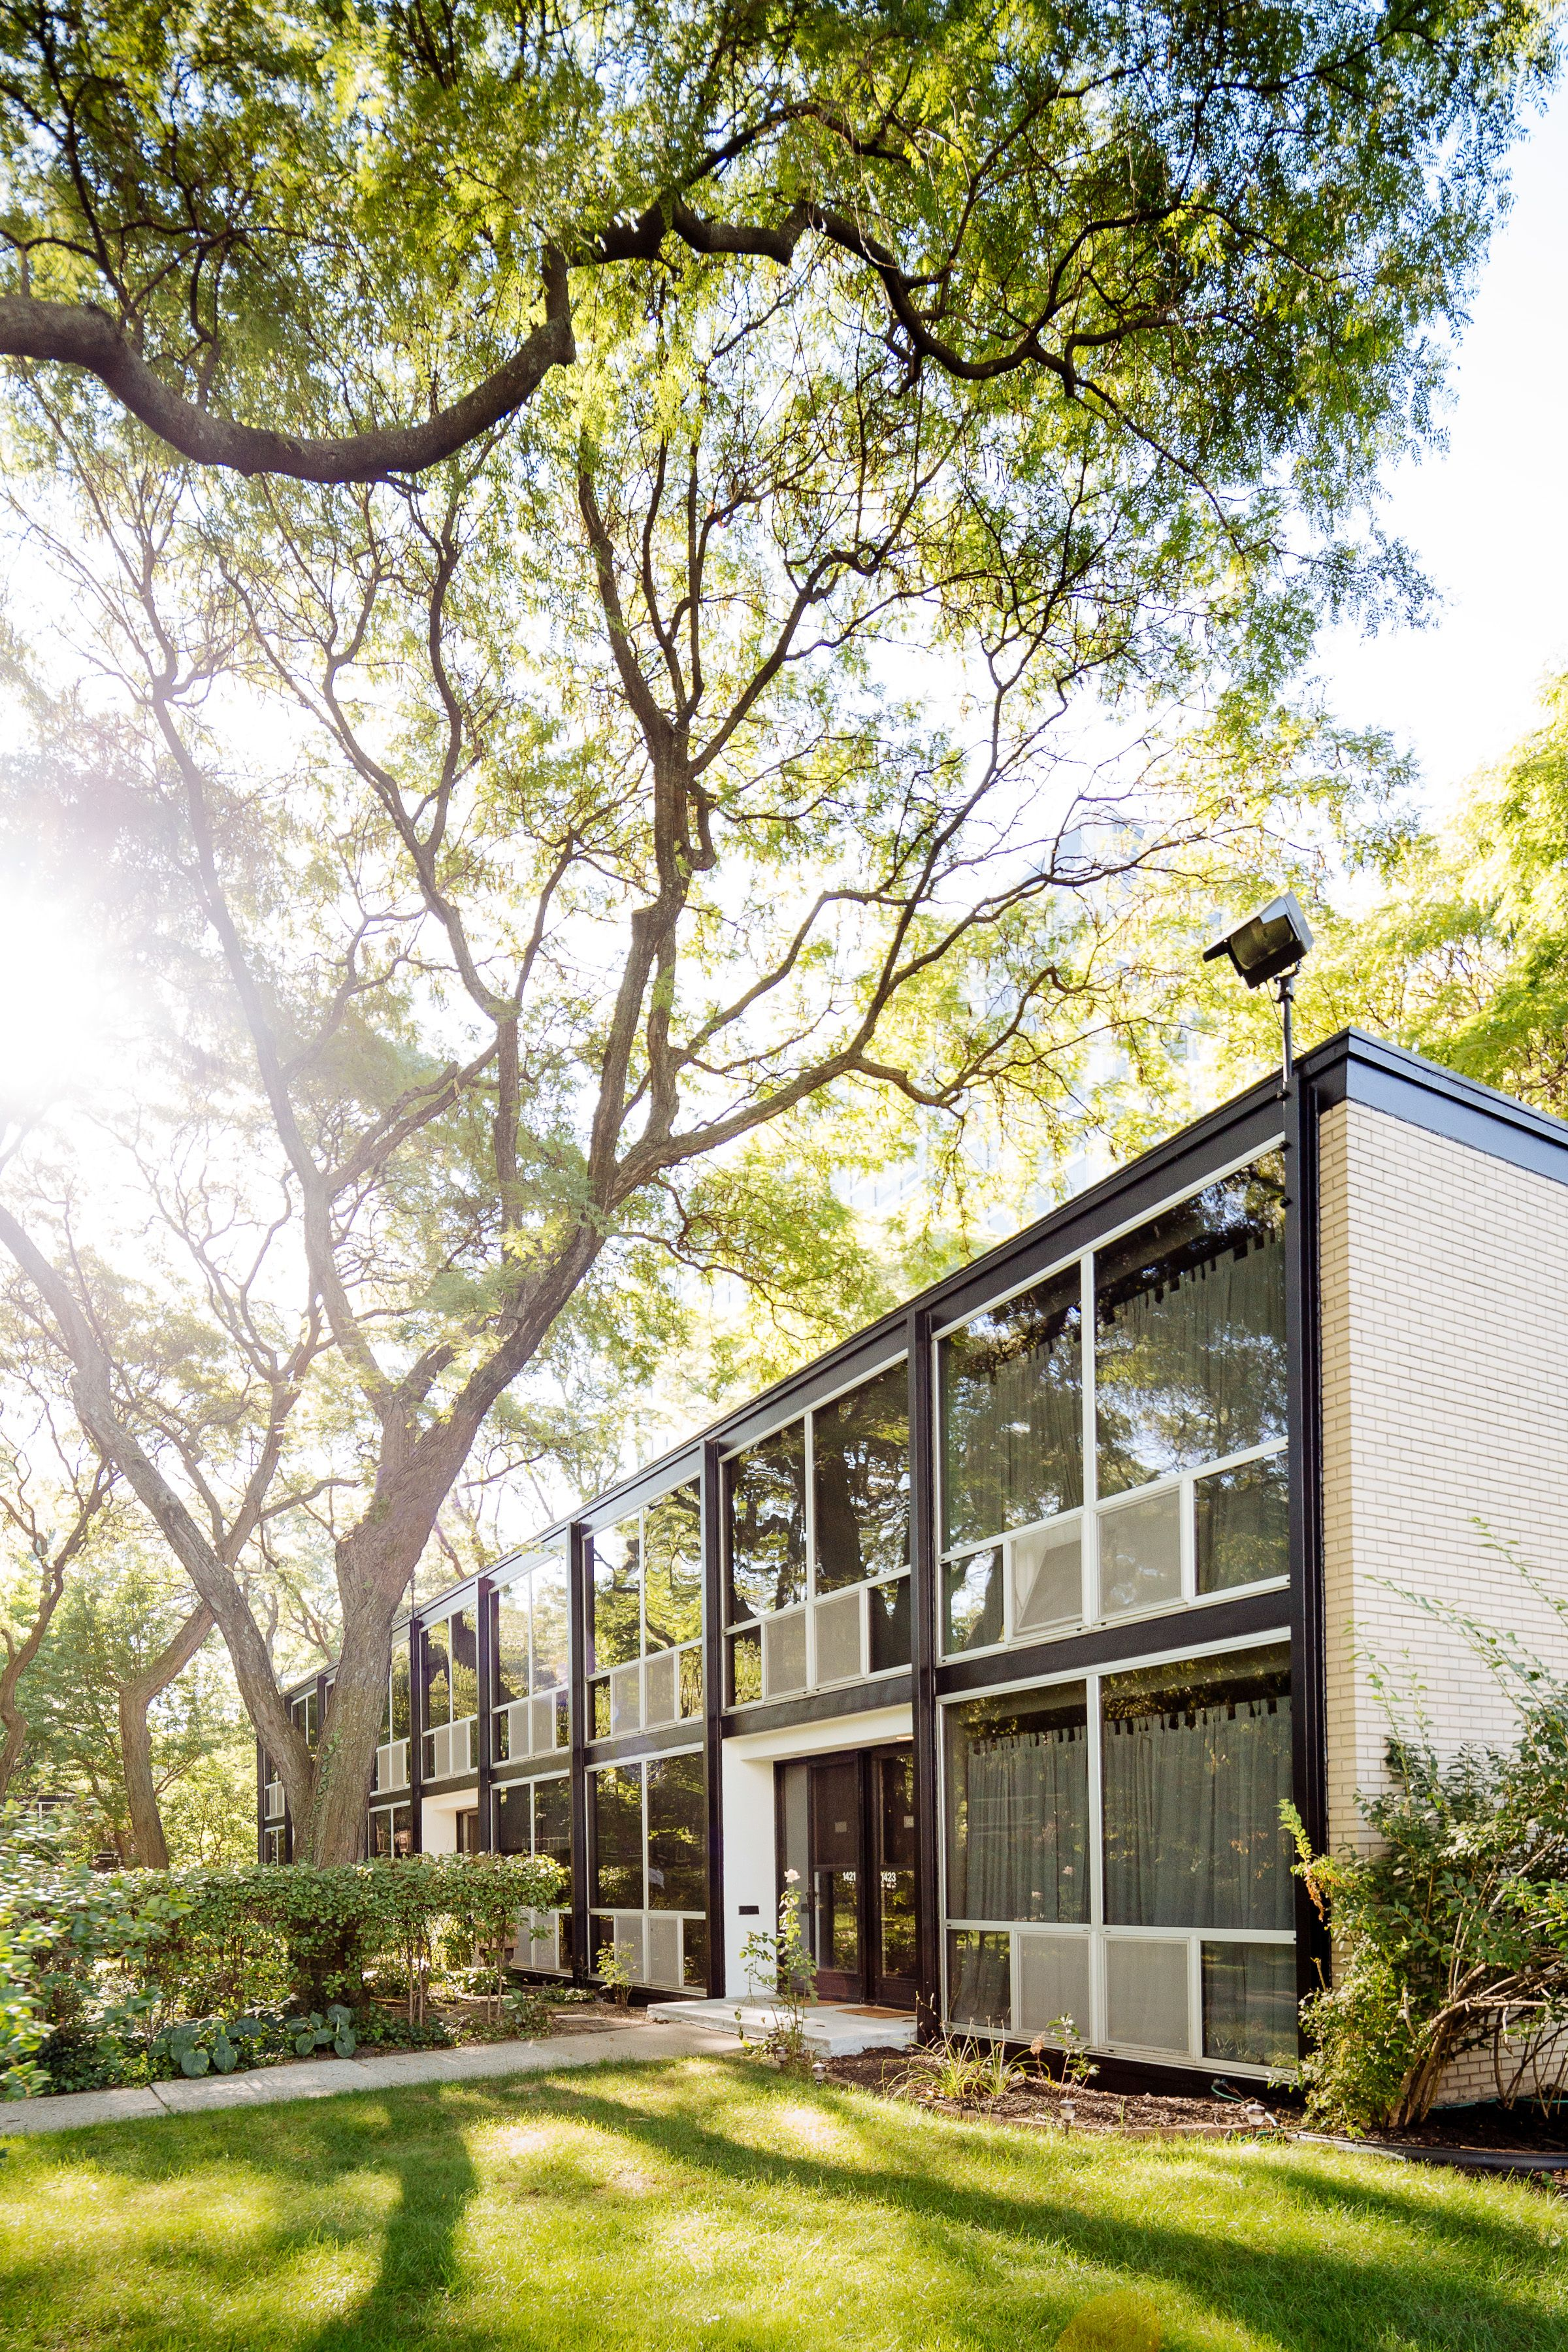 Home garden style  Best Photos from A New York Transplant Remakes One of Mies van der